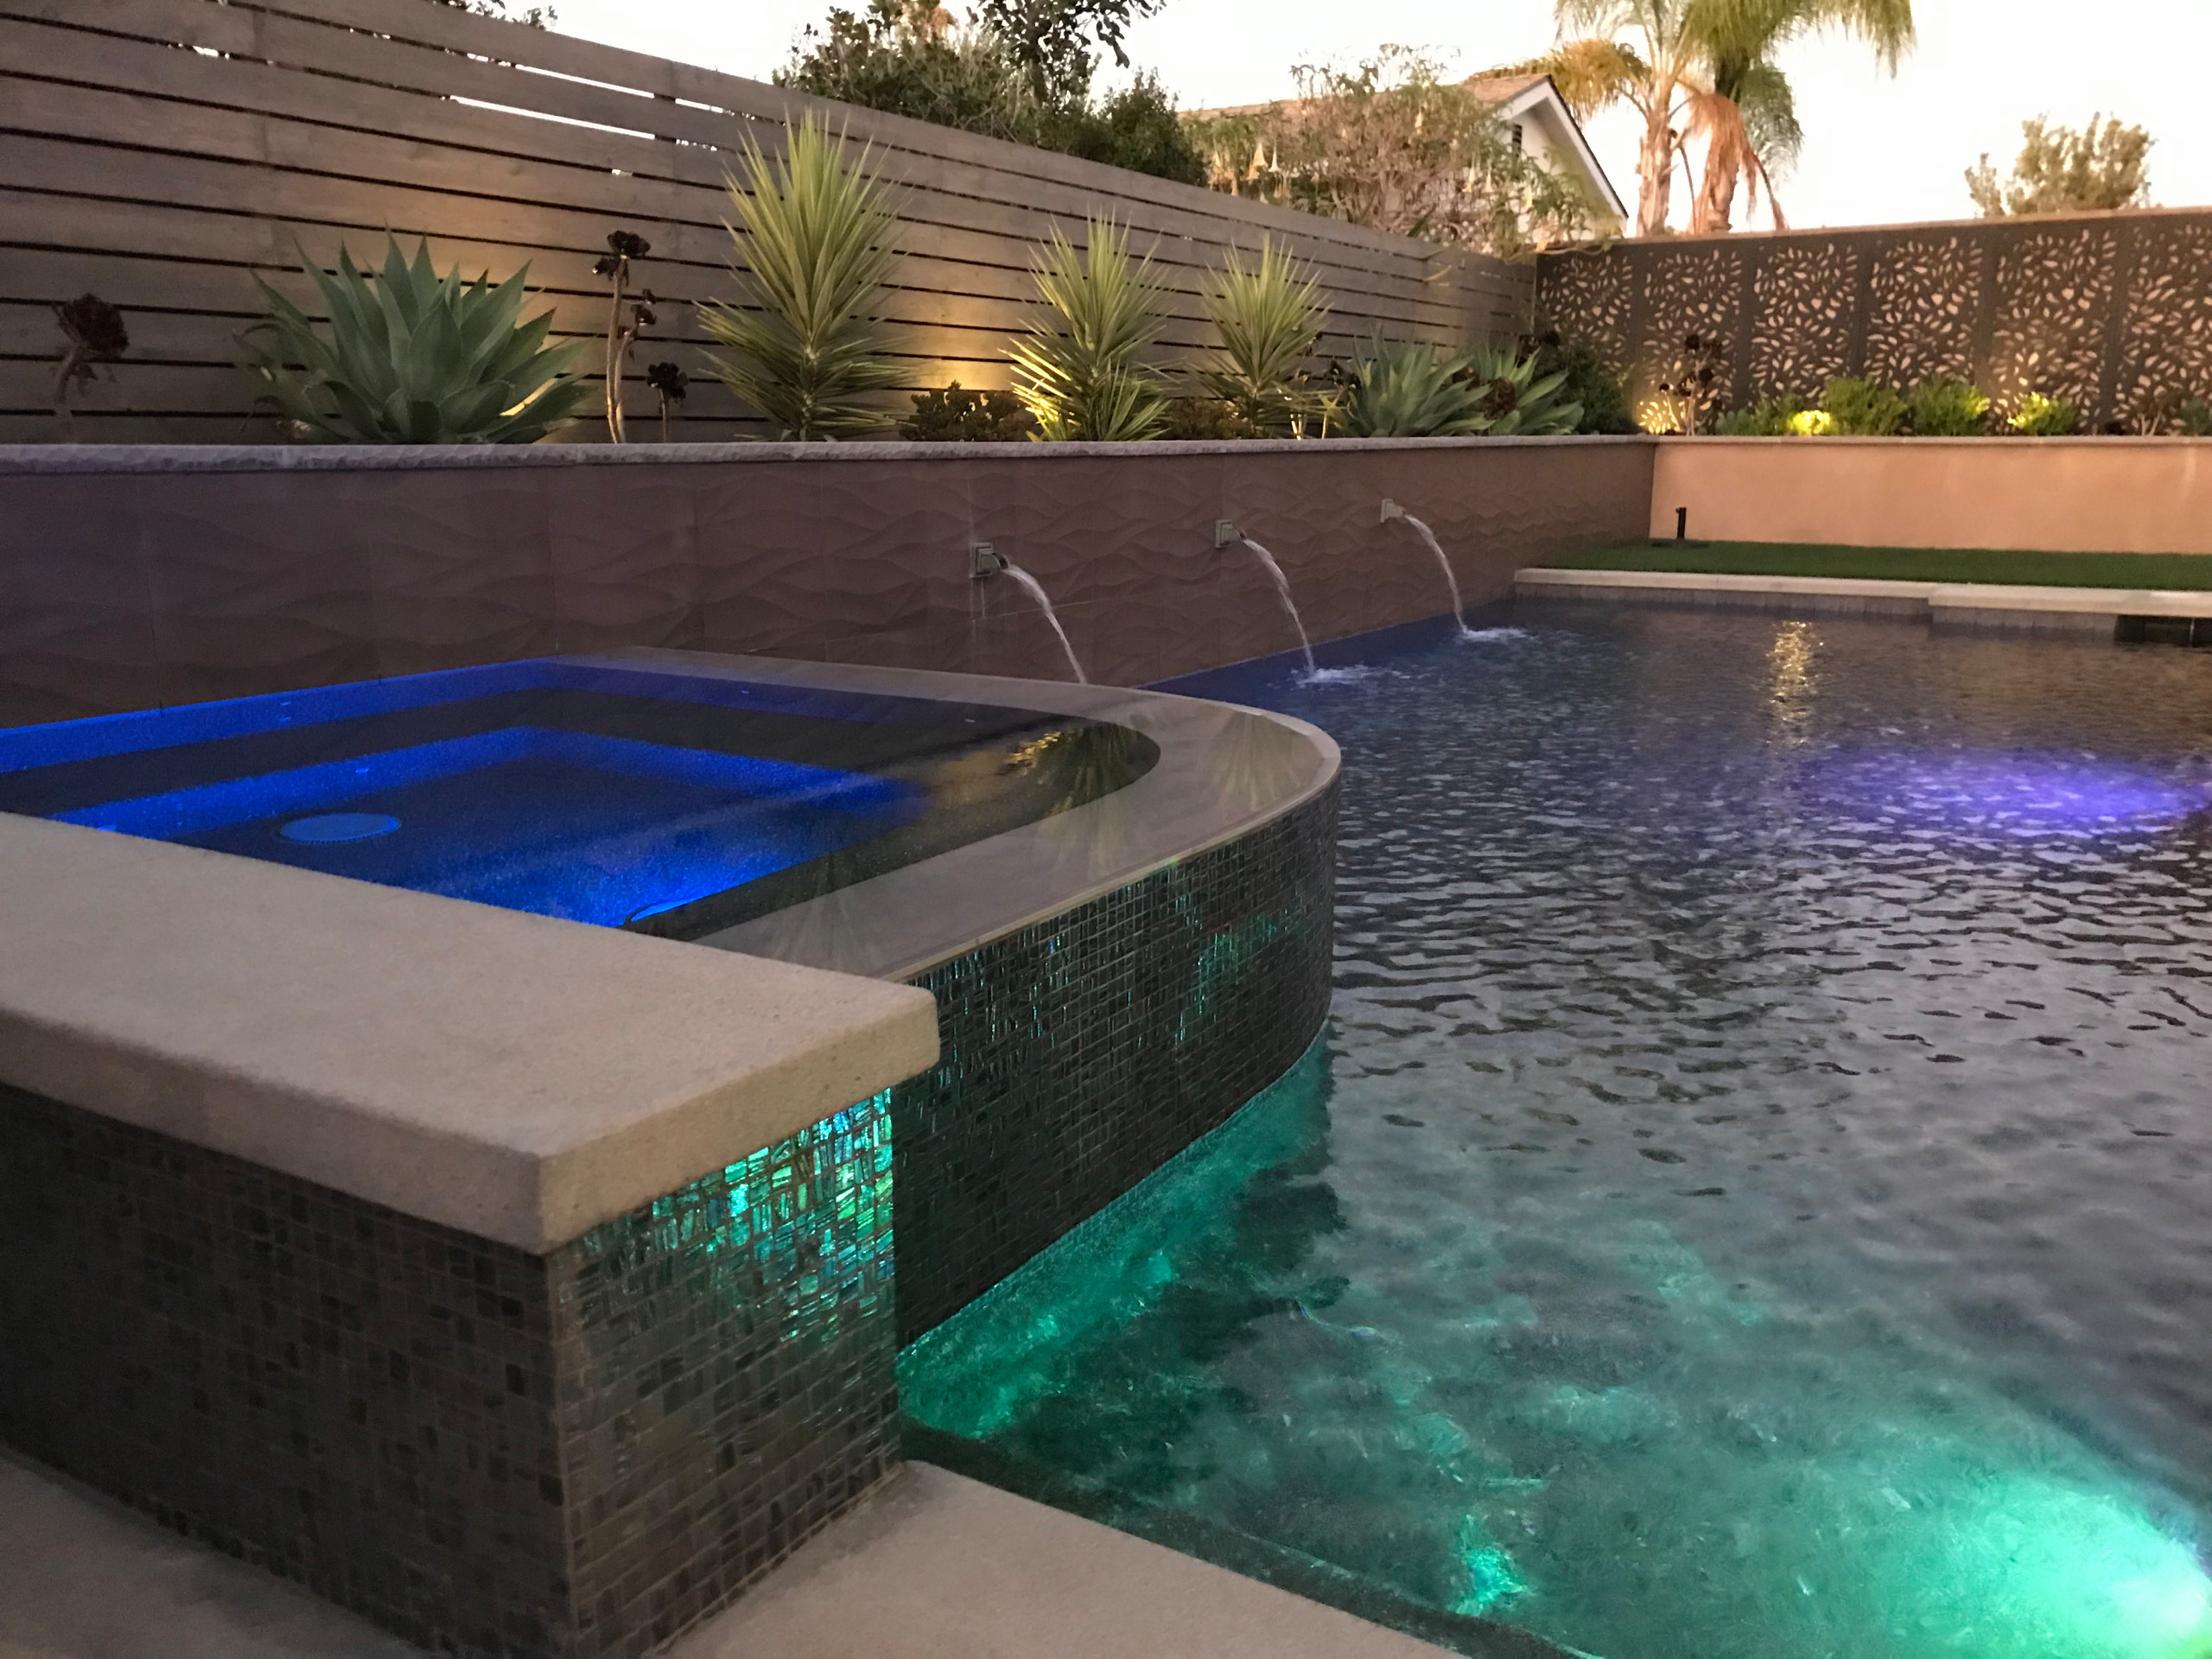 Vanishing Edge Spa and Water Features